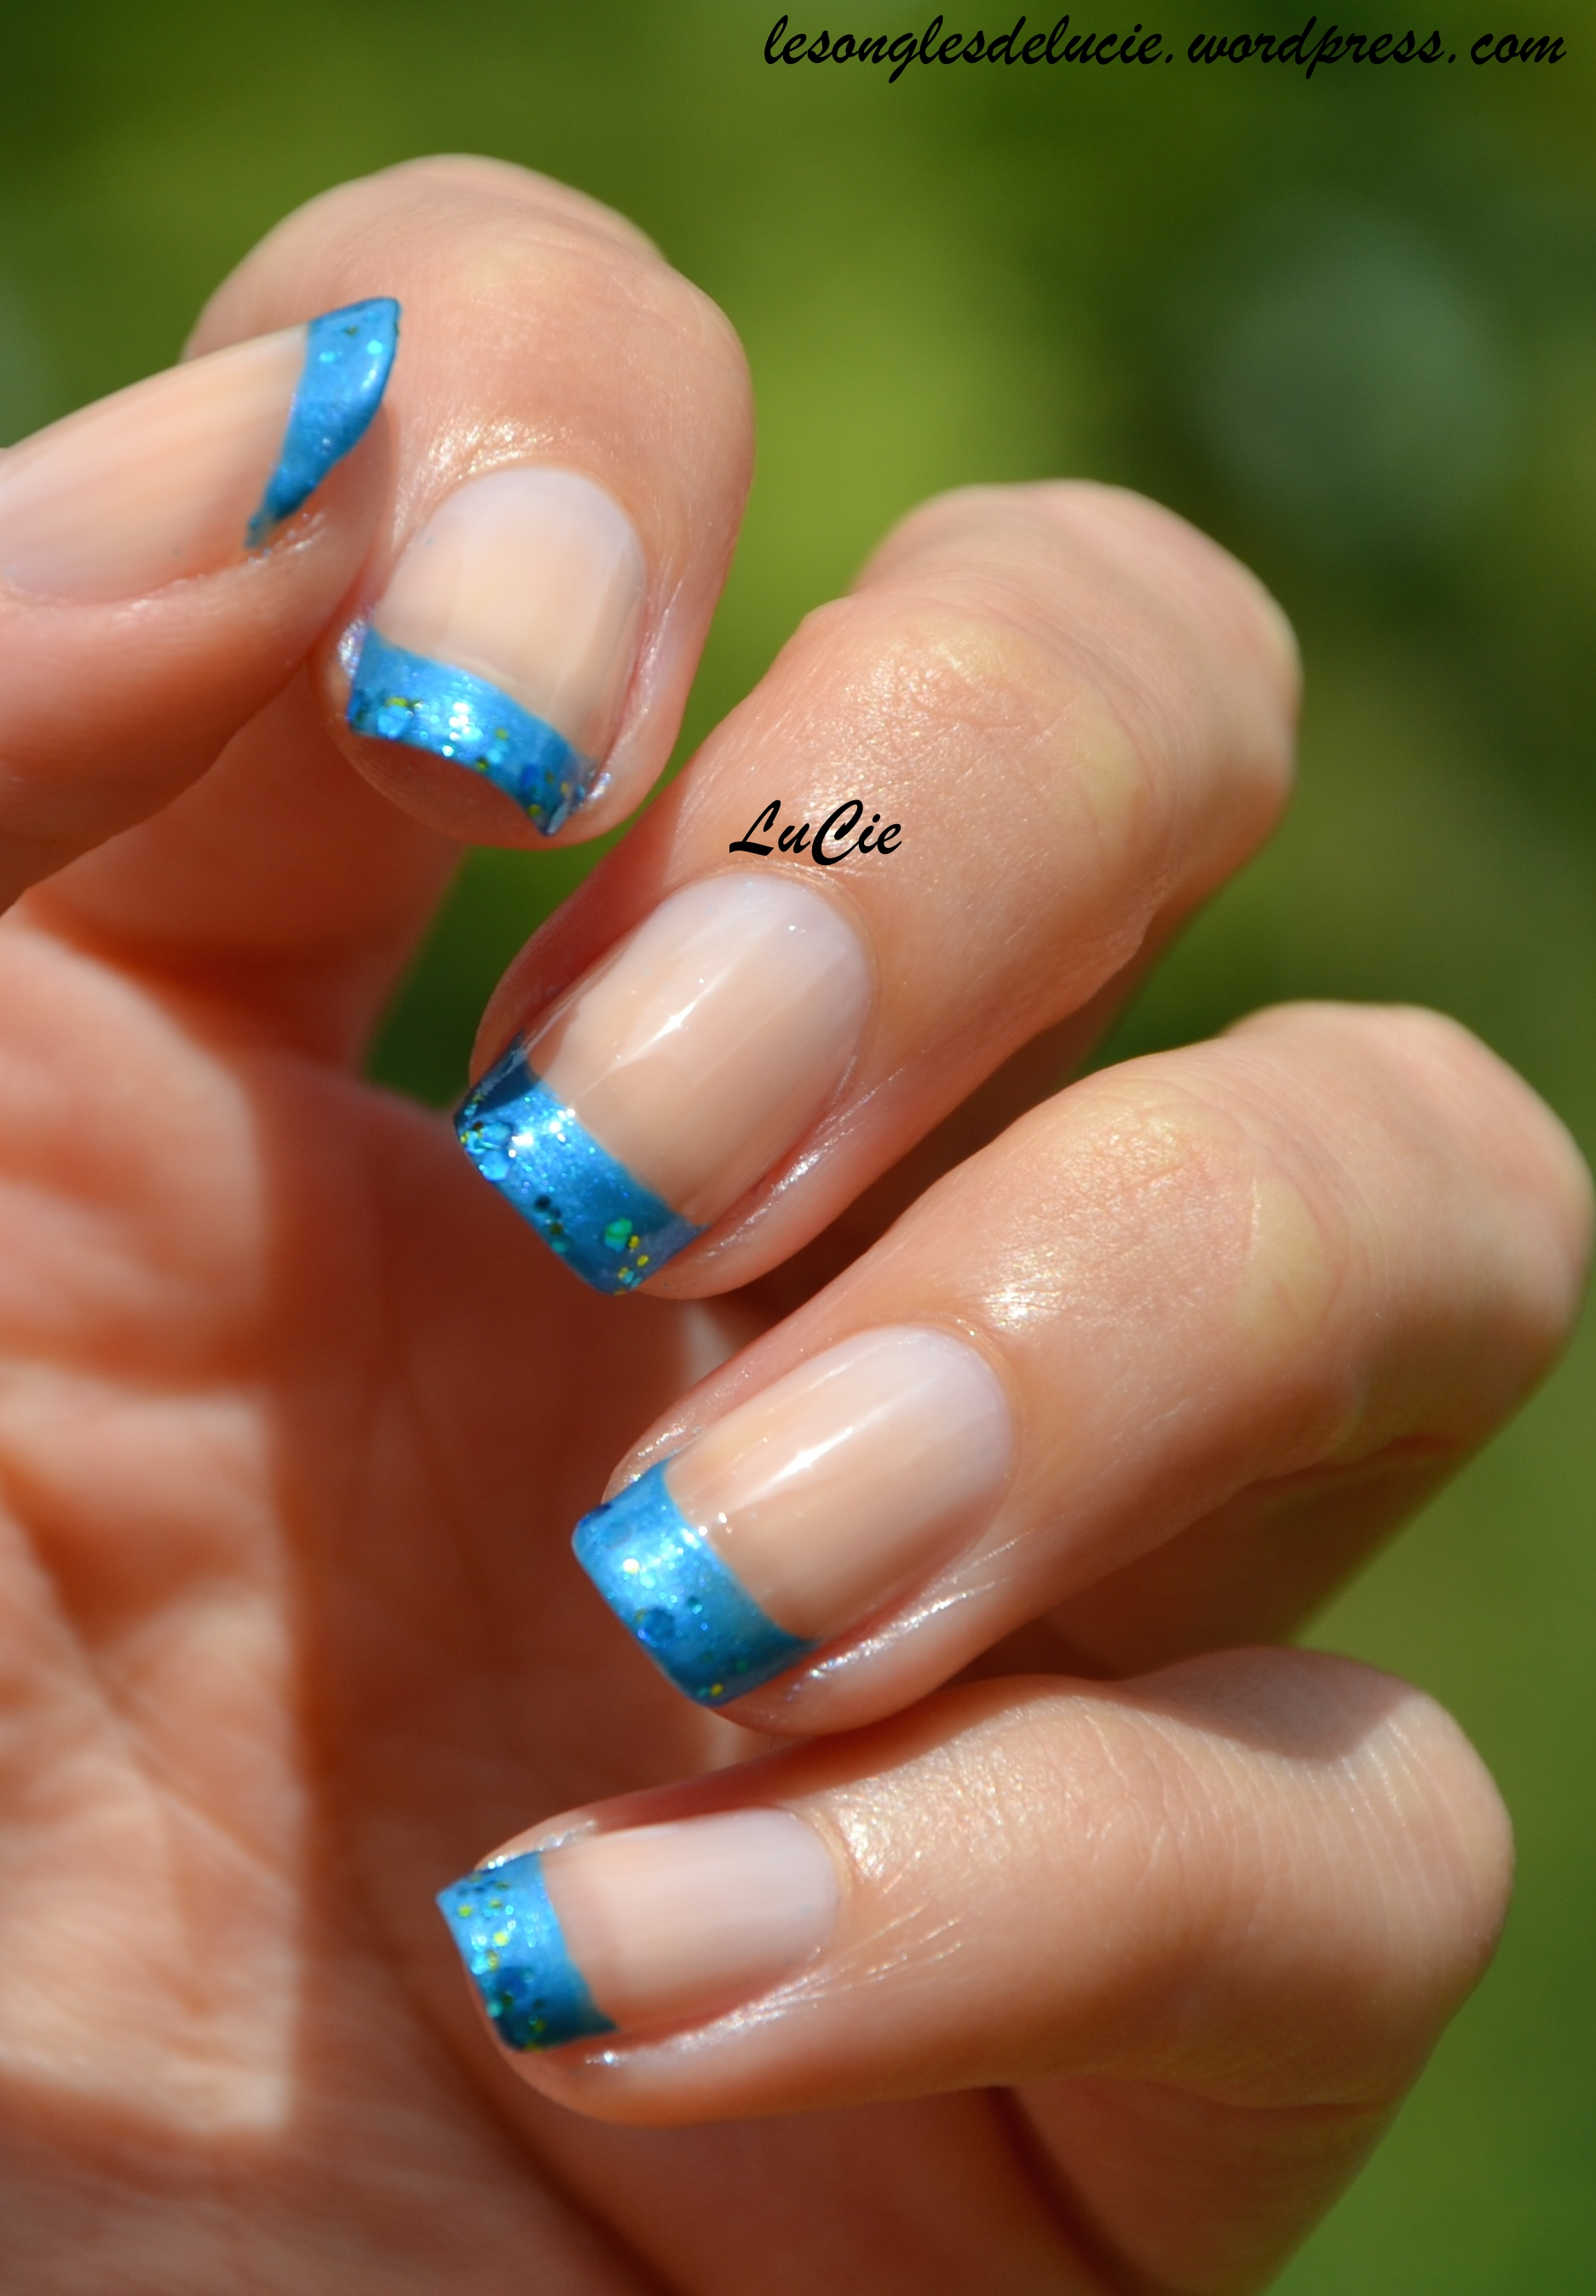 French Manucure Les Ongles De Lucie